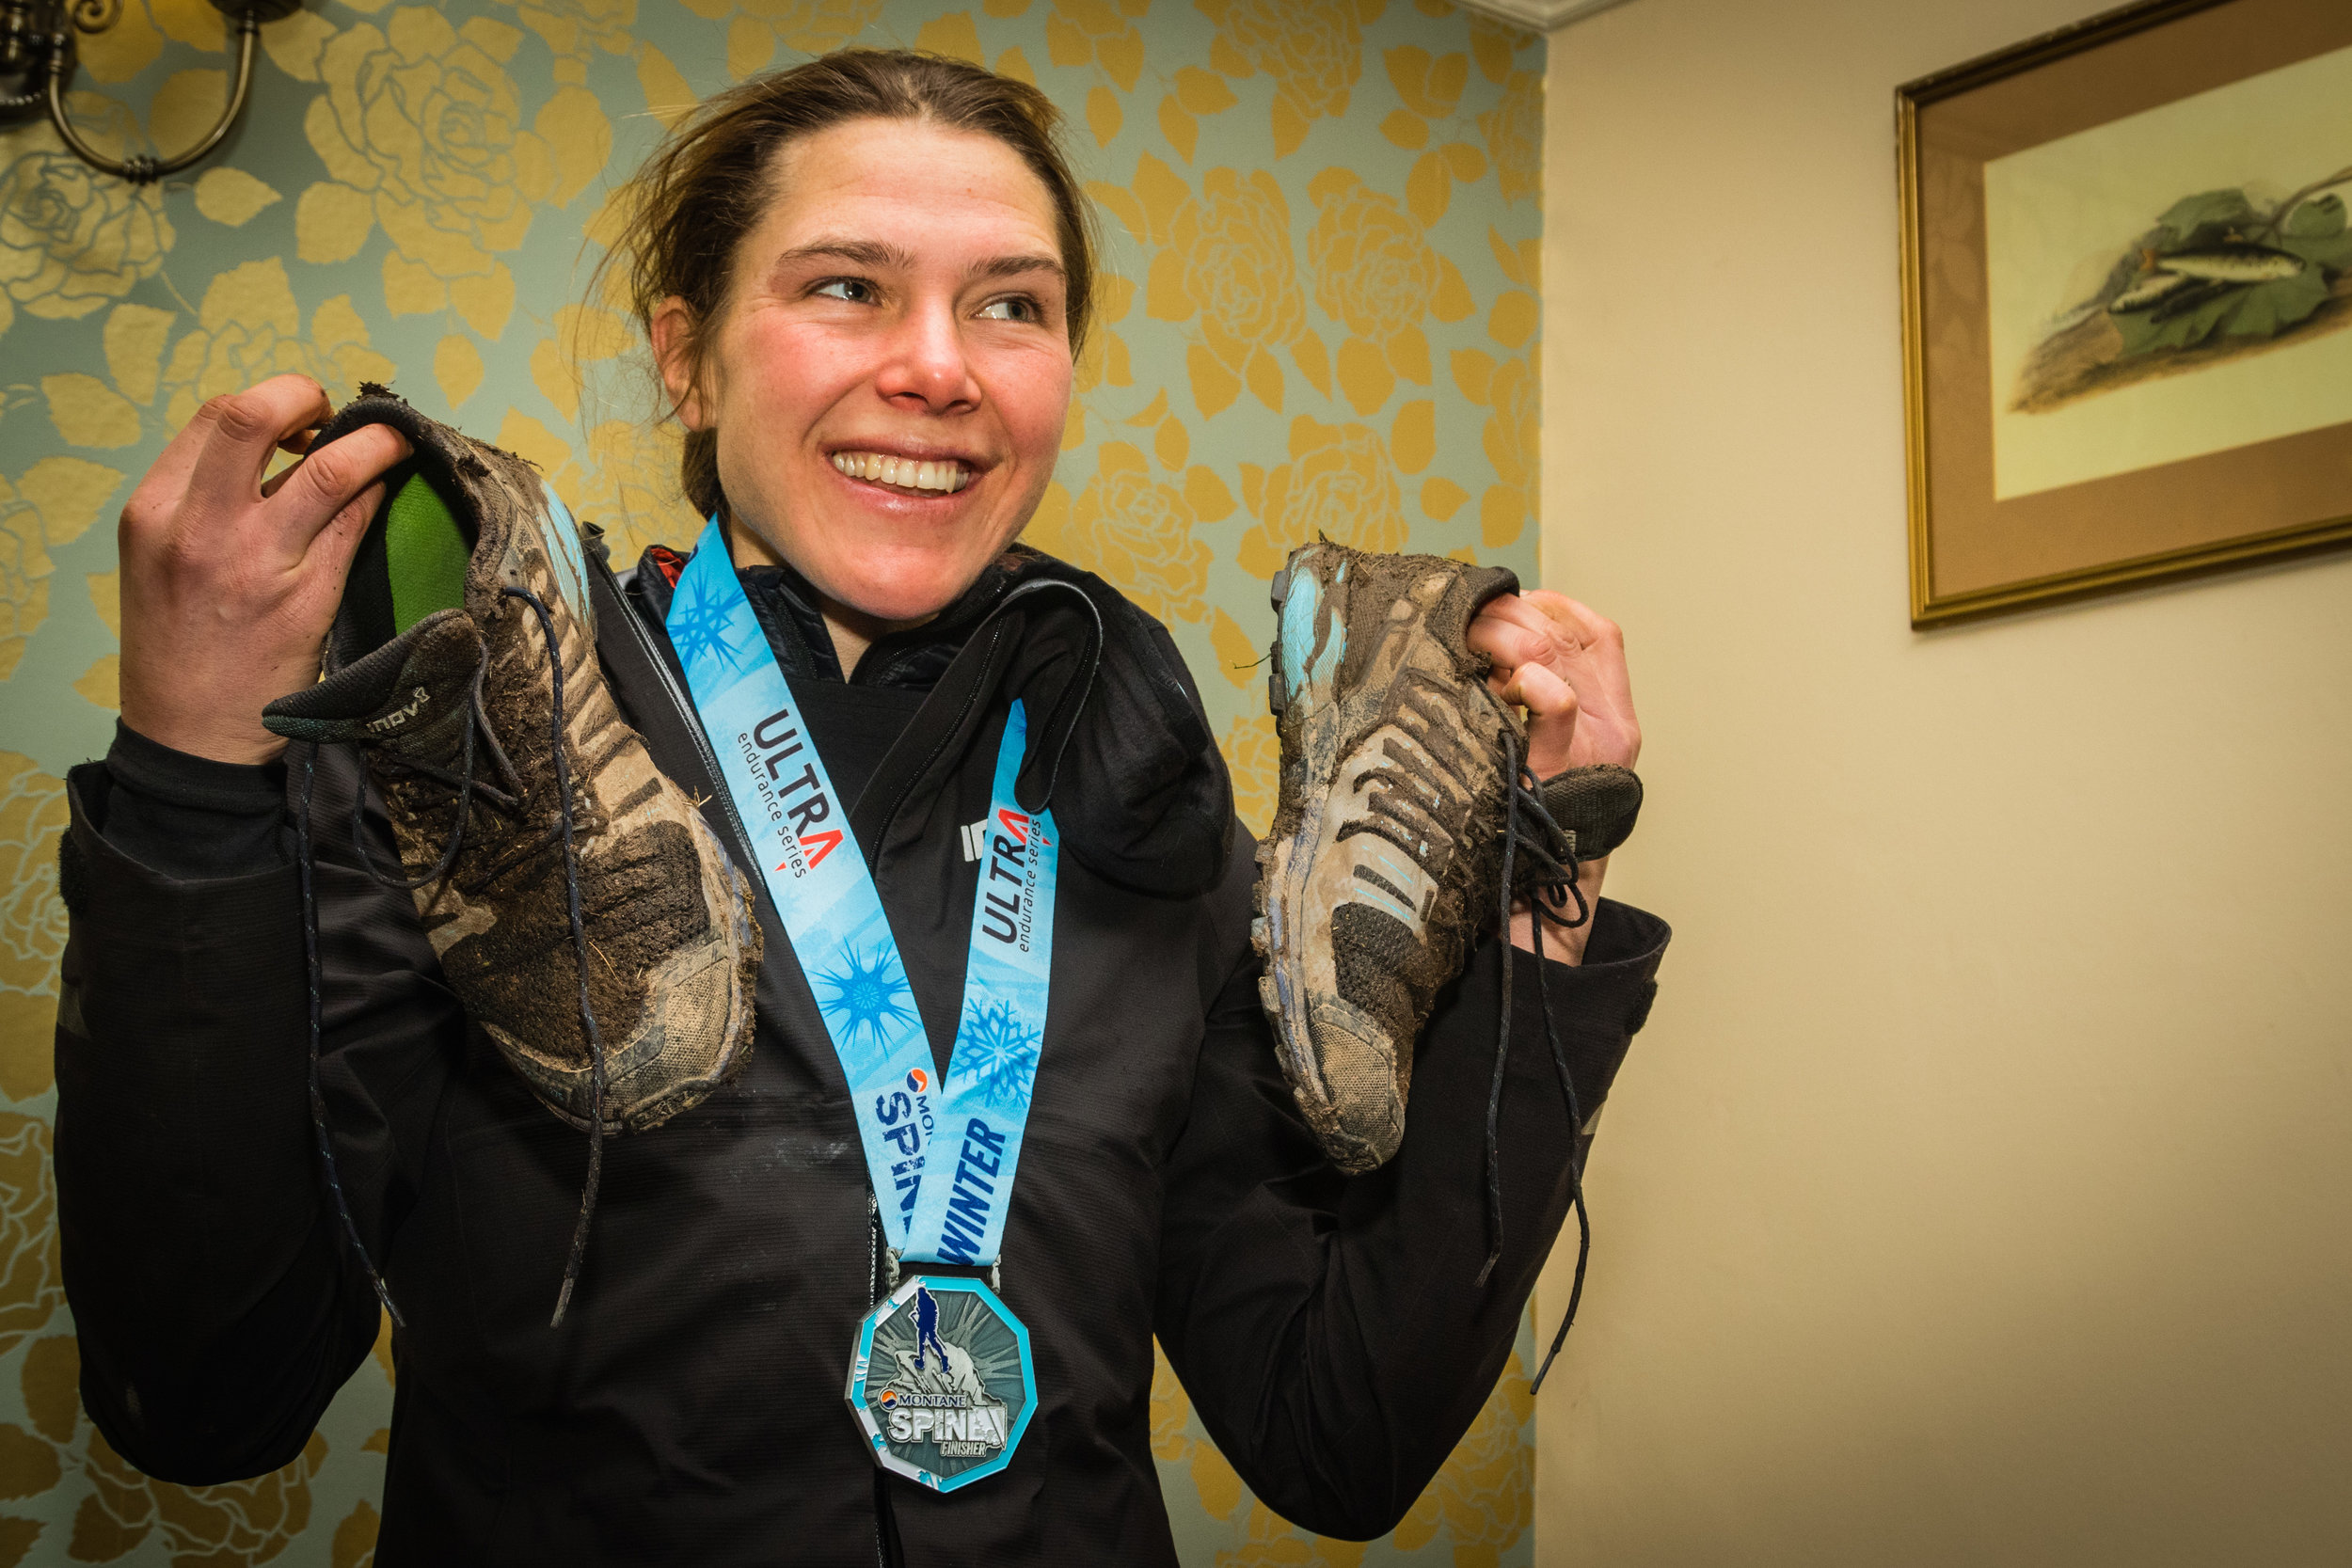 Montane Spine Race winner Jasmin Paris wearing the ROCLITE 275s, which now feature graphene (credit: Pete Aylward)